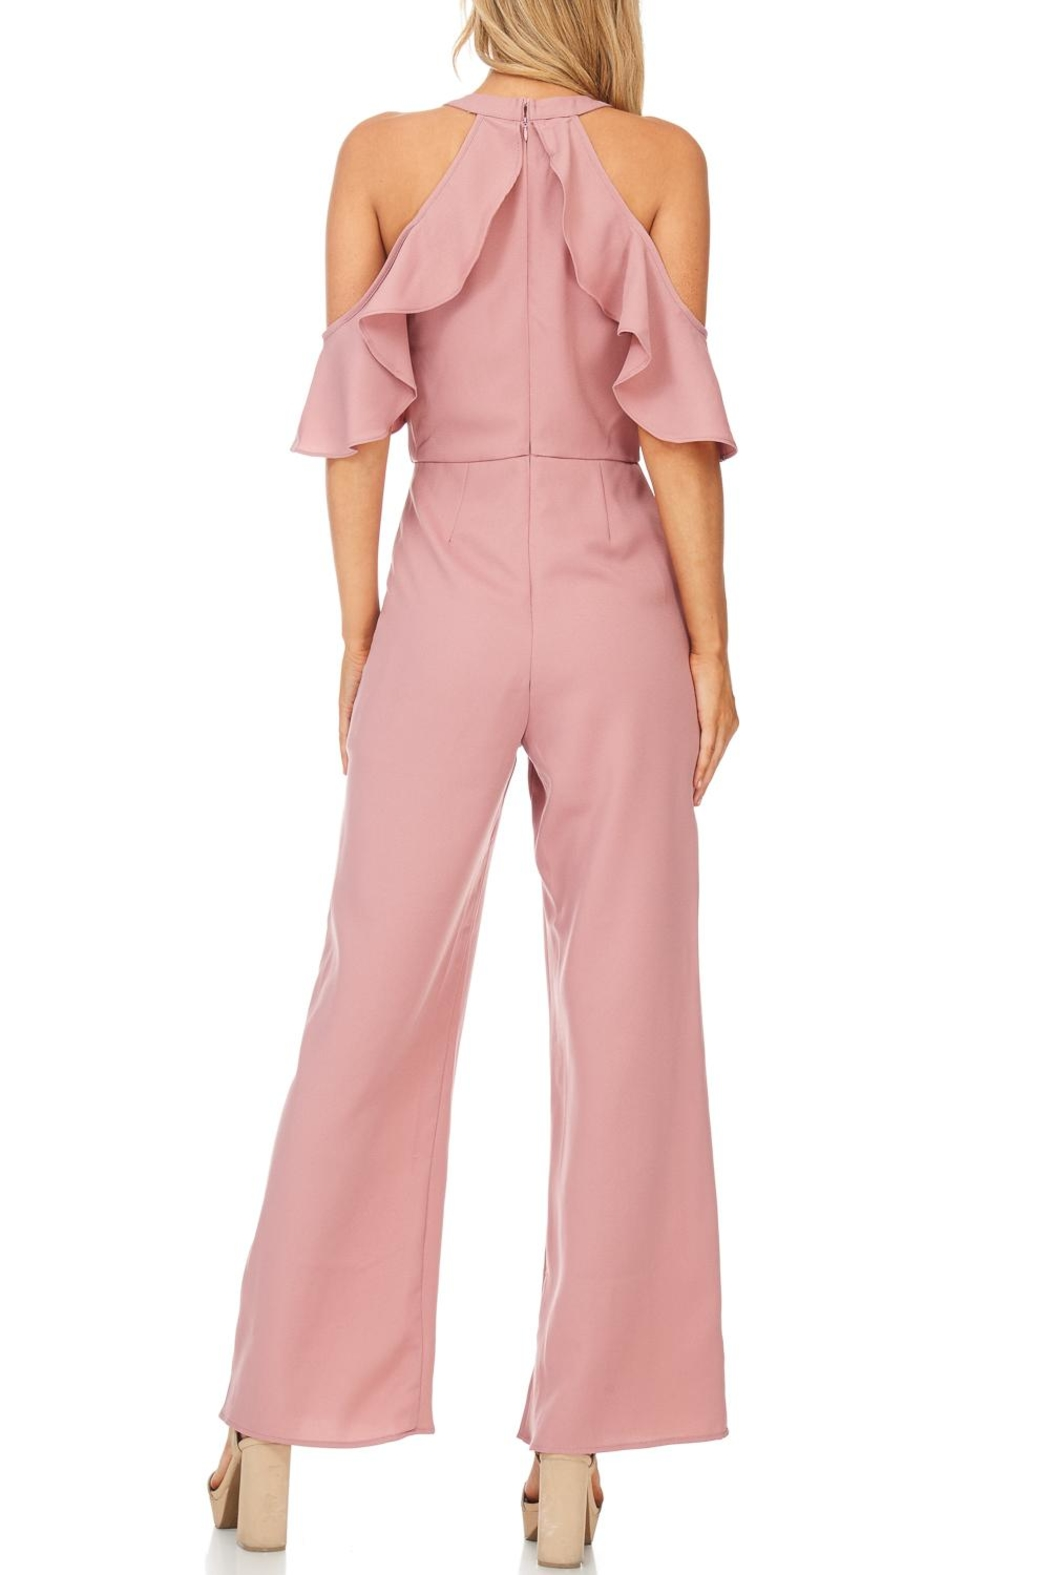 She + Sky Dusty Rose Jumpsuit - Back Cropped Image